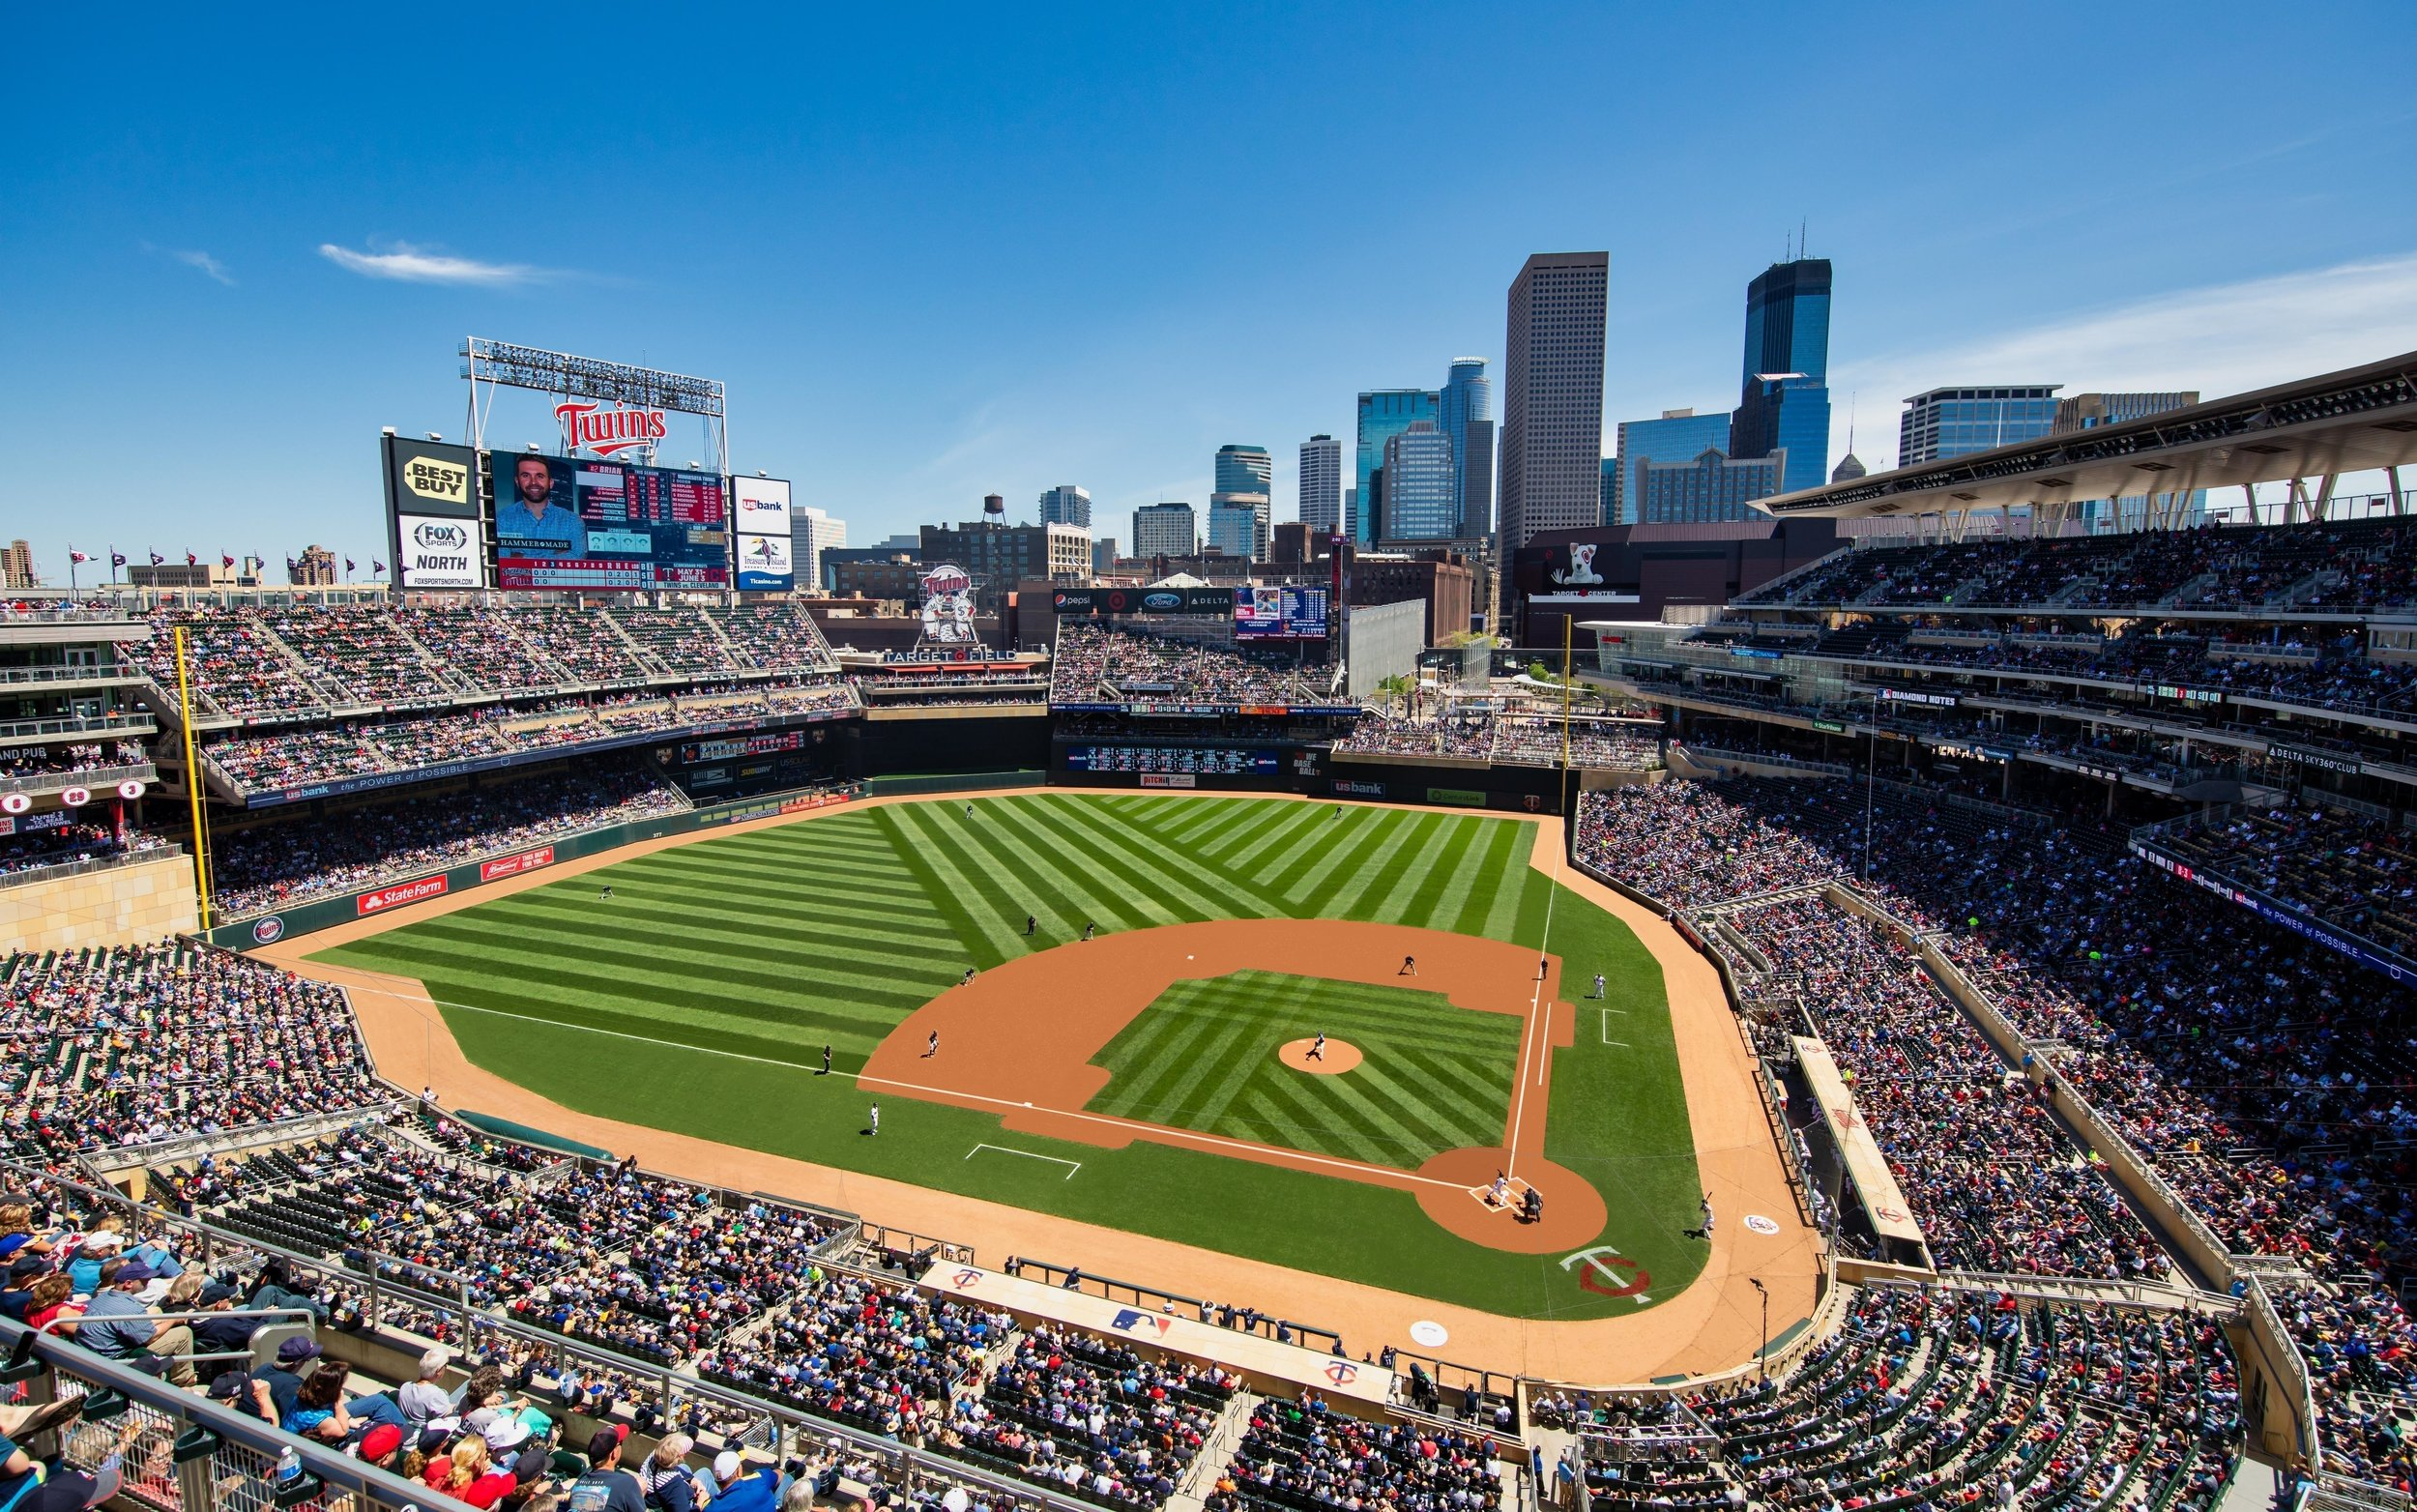 "Target Field - Home of the MN Twins - Take a guided tour of Target Field with all its sustainable features, artwork and Minnesota Twins history. Rated a Top 10 MLB Stadium Experience by ""ESPN the Magazine,"" it's a tour you won't want to miss! Please arrive at Gate 29 to begin your adventure."